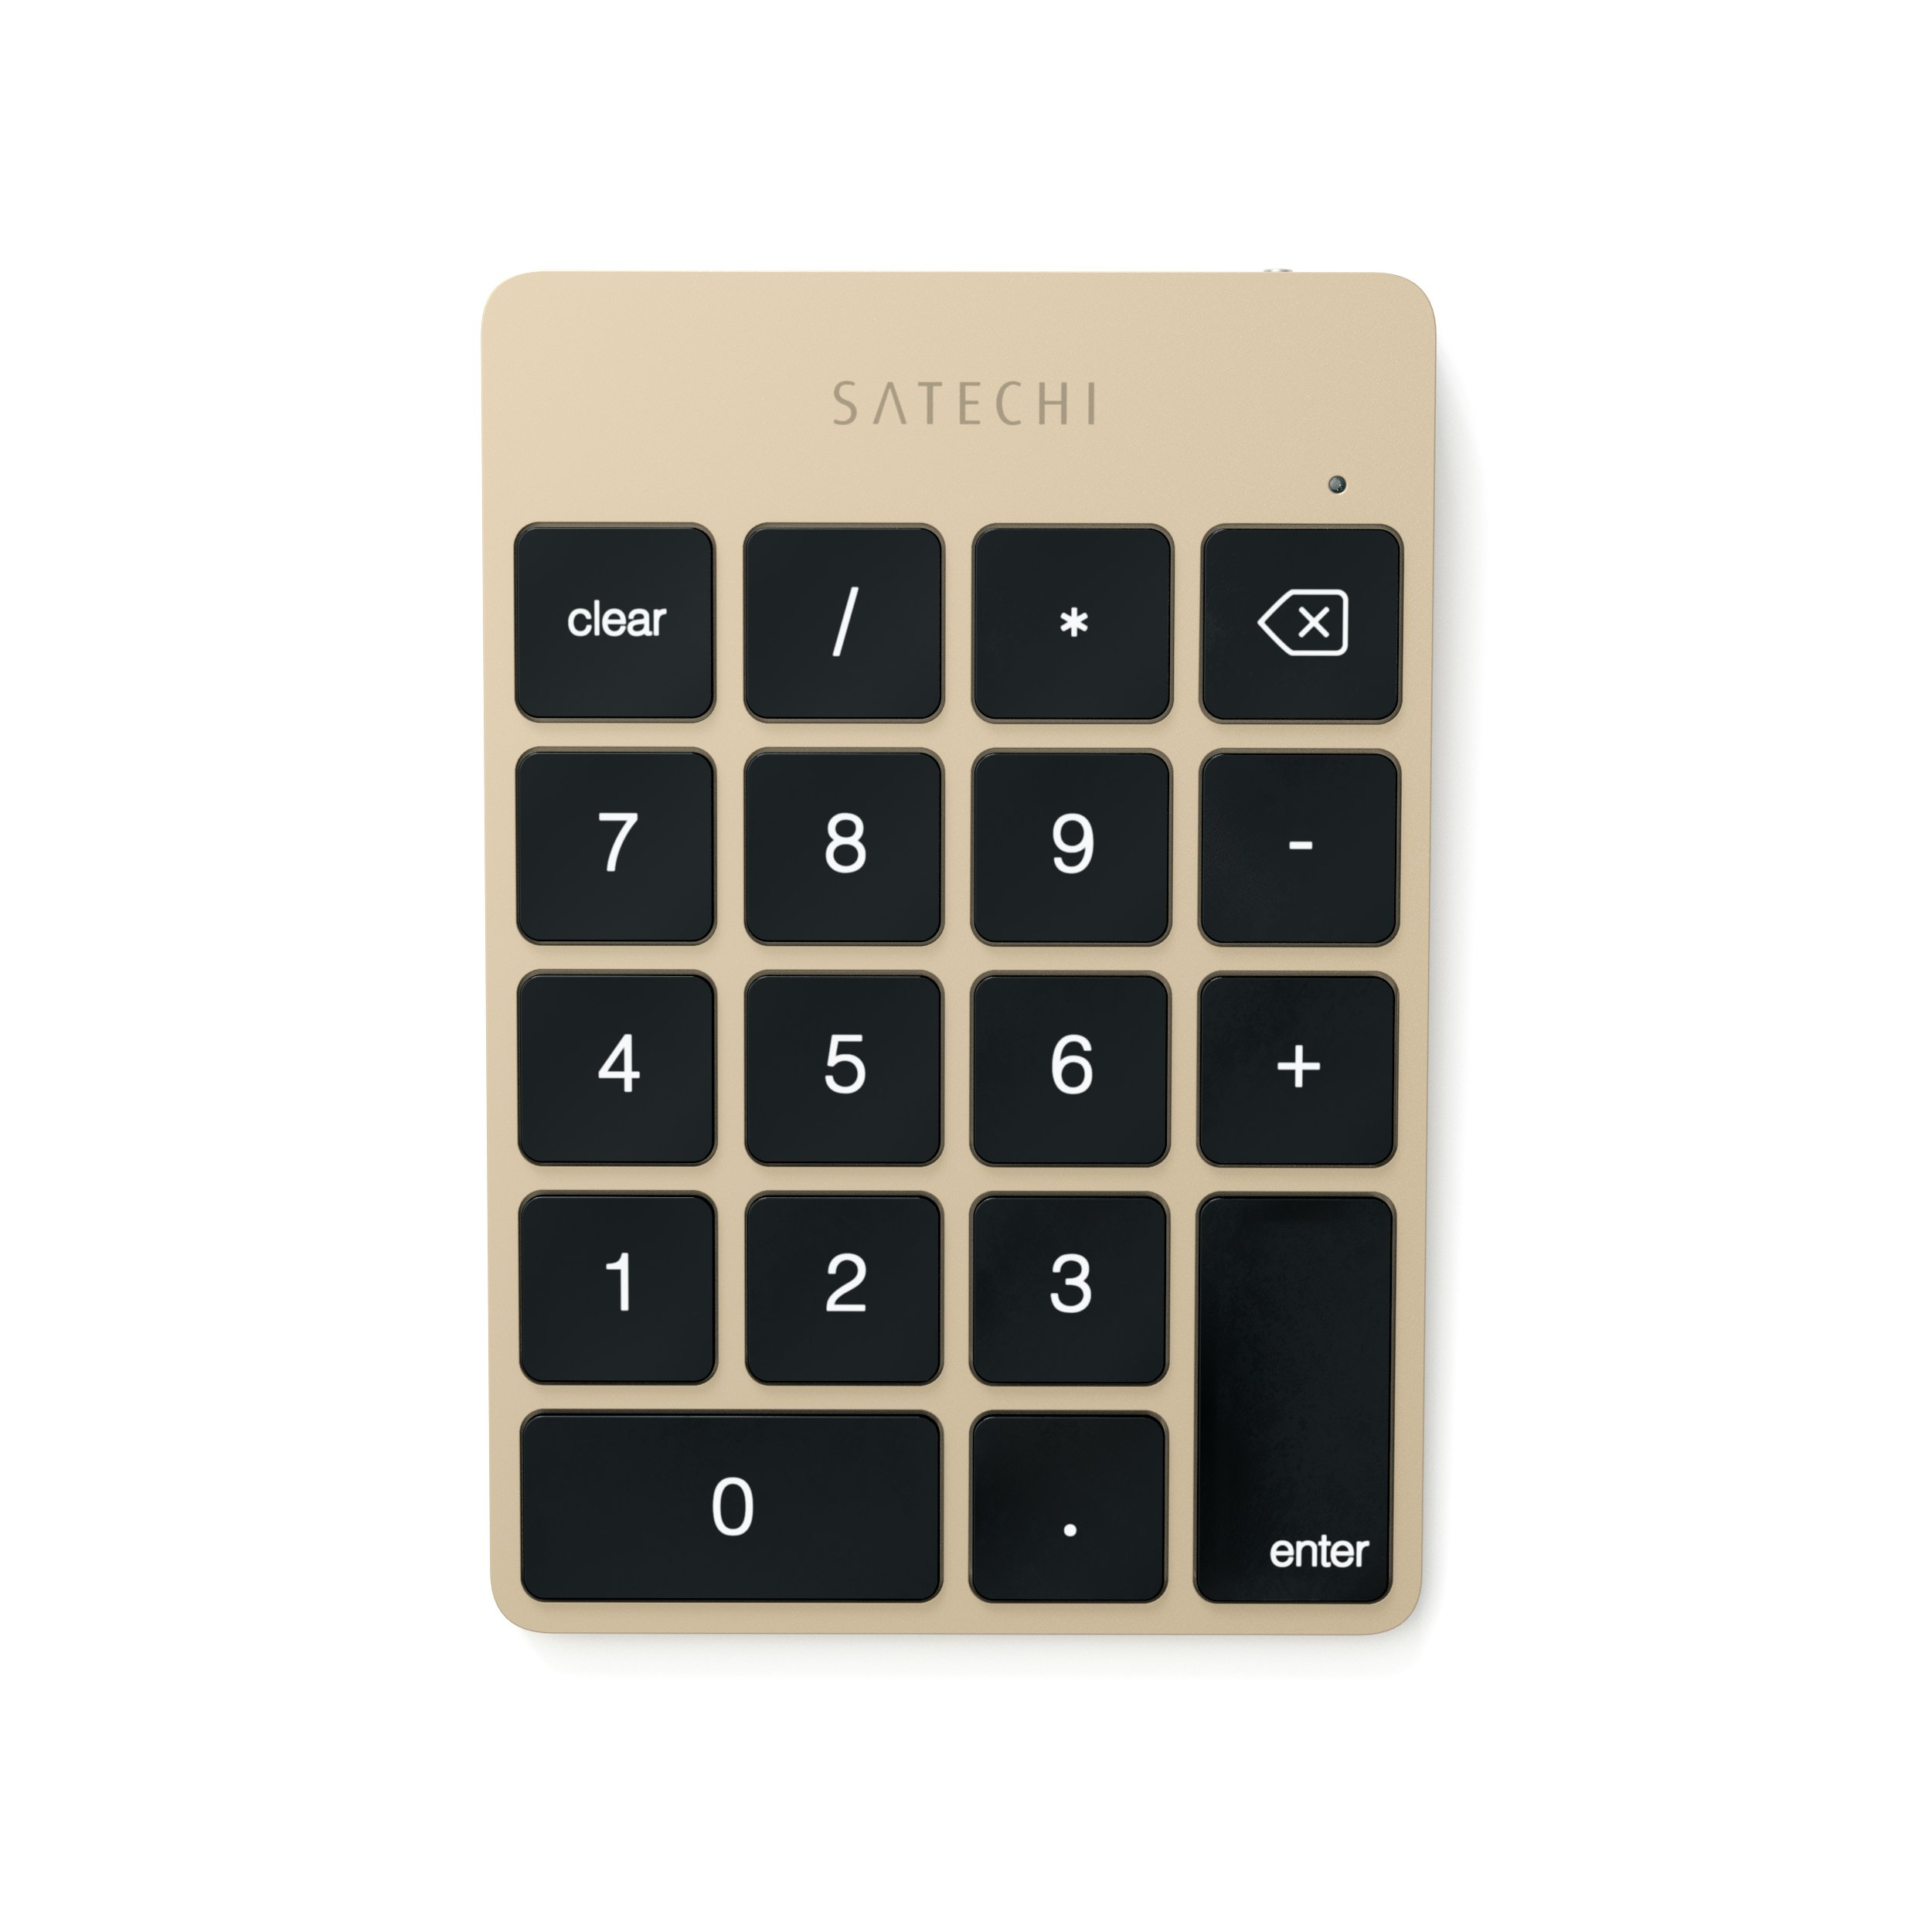 Satechi Slim Aluminum Bluetooth Wireless 18-Key Keypad Keyboard Extension for Excel Numbers Data Entry for 2017 iMac, iMac Pro, MacBook Pro, MacBook, iPad, iPhone, Dell, Lenovo and more (Gold)